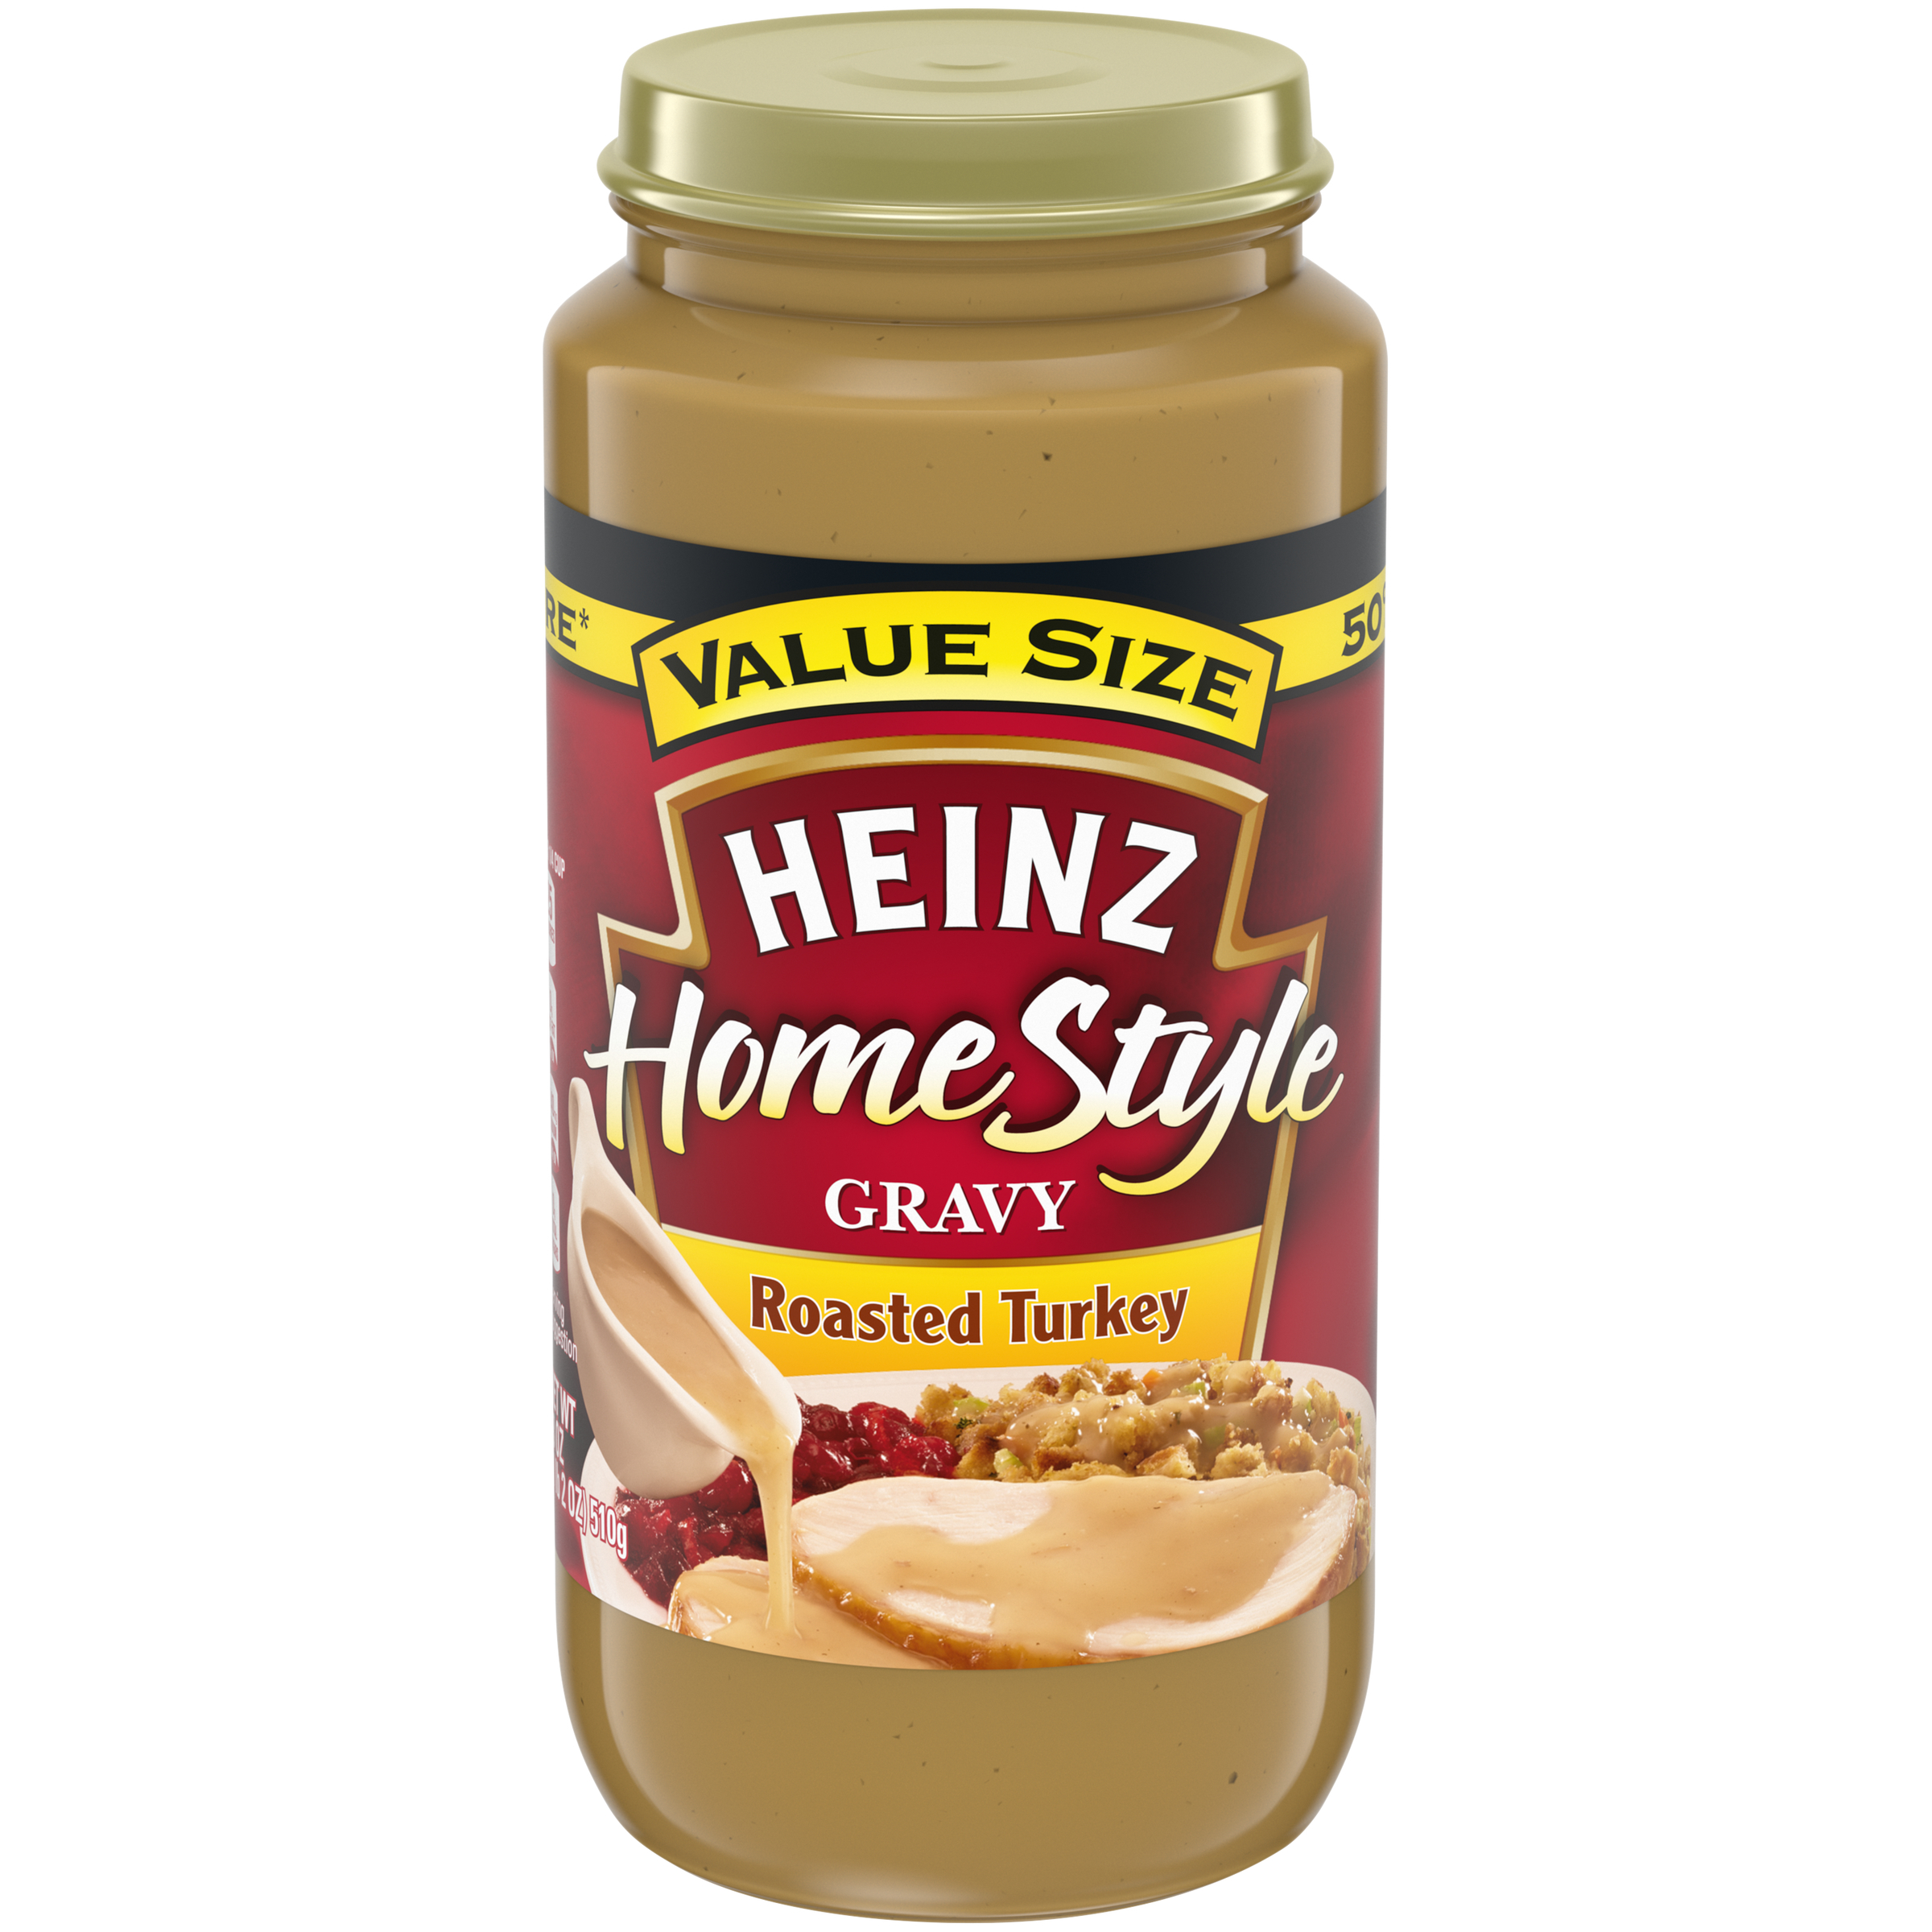 Heinz HomeStyle Roasted Turkey Gravy 18 oz. Jar image